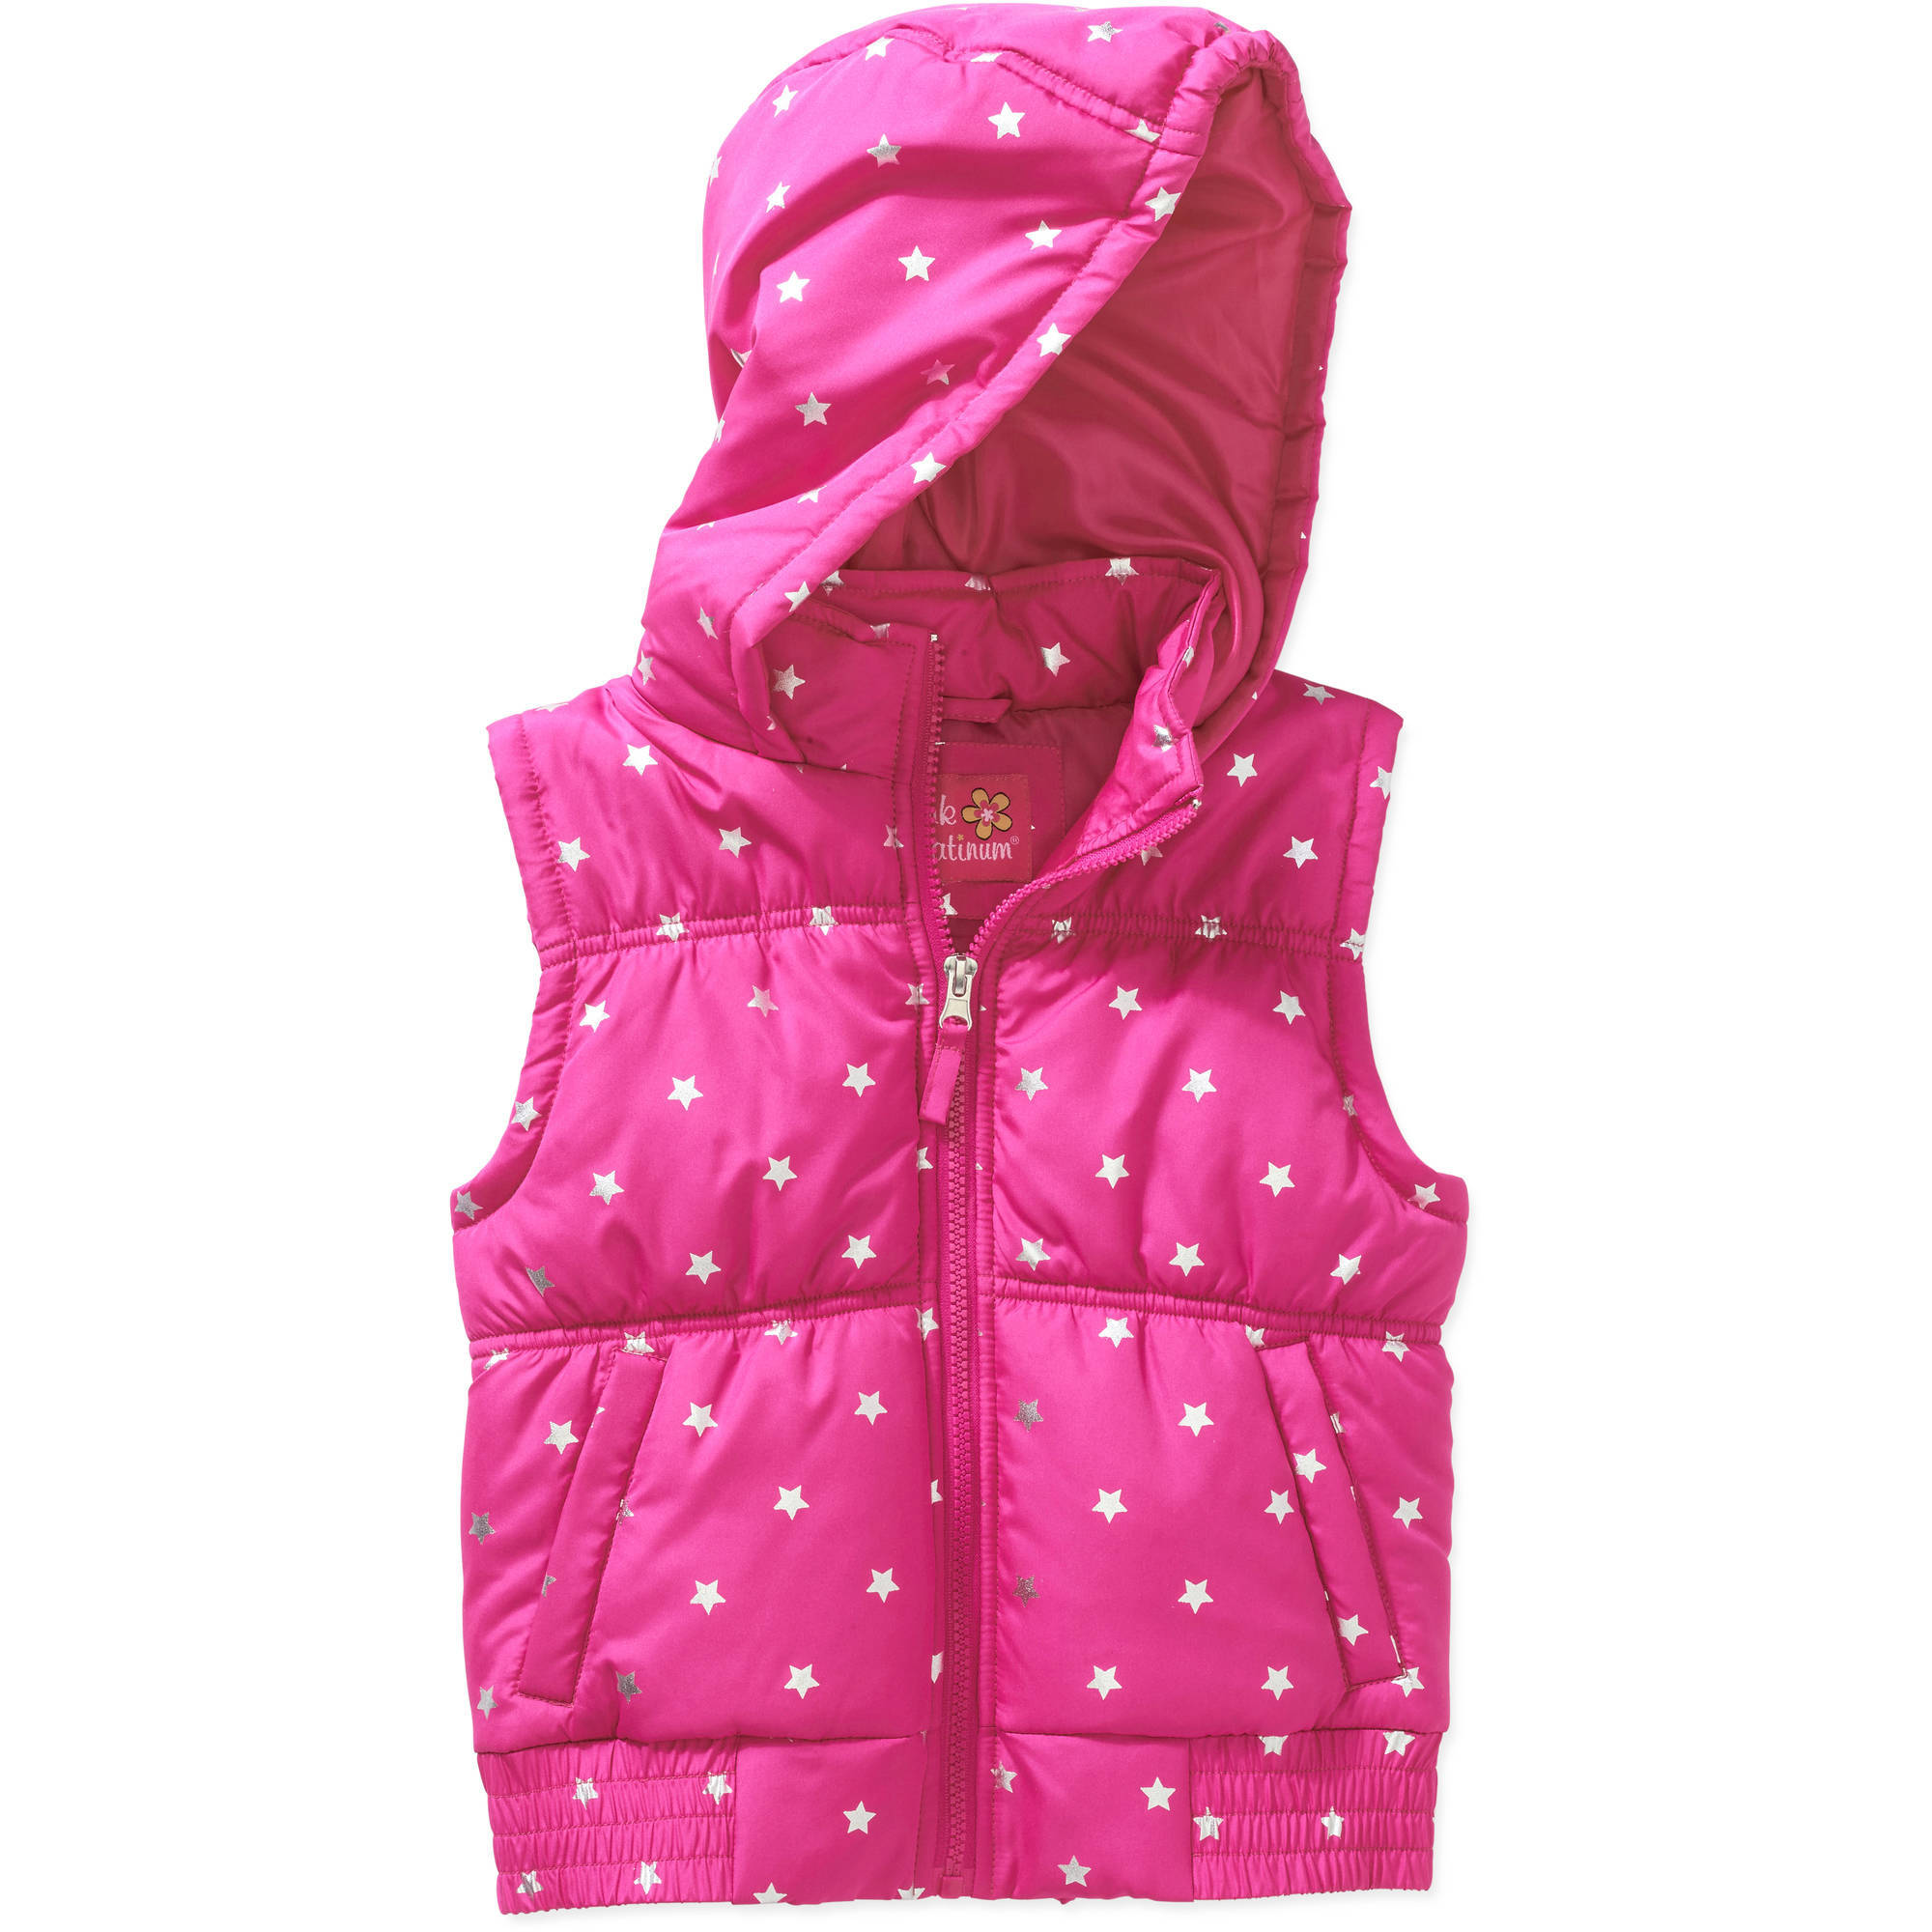 Girls' Foil Star Hooded Vest with Pockets